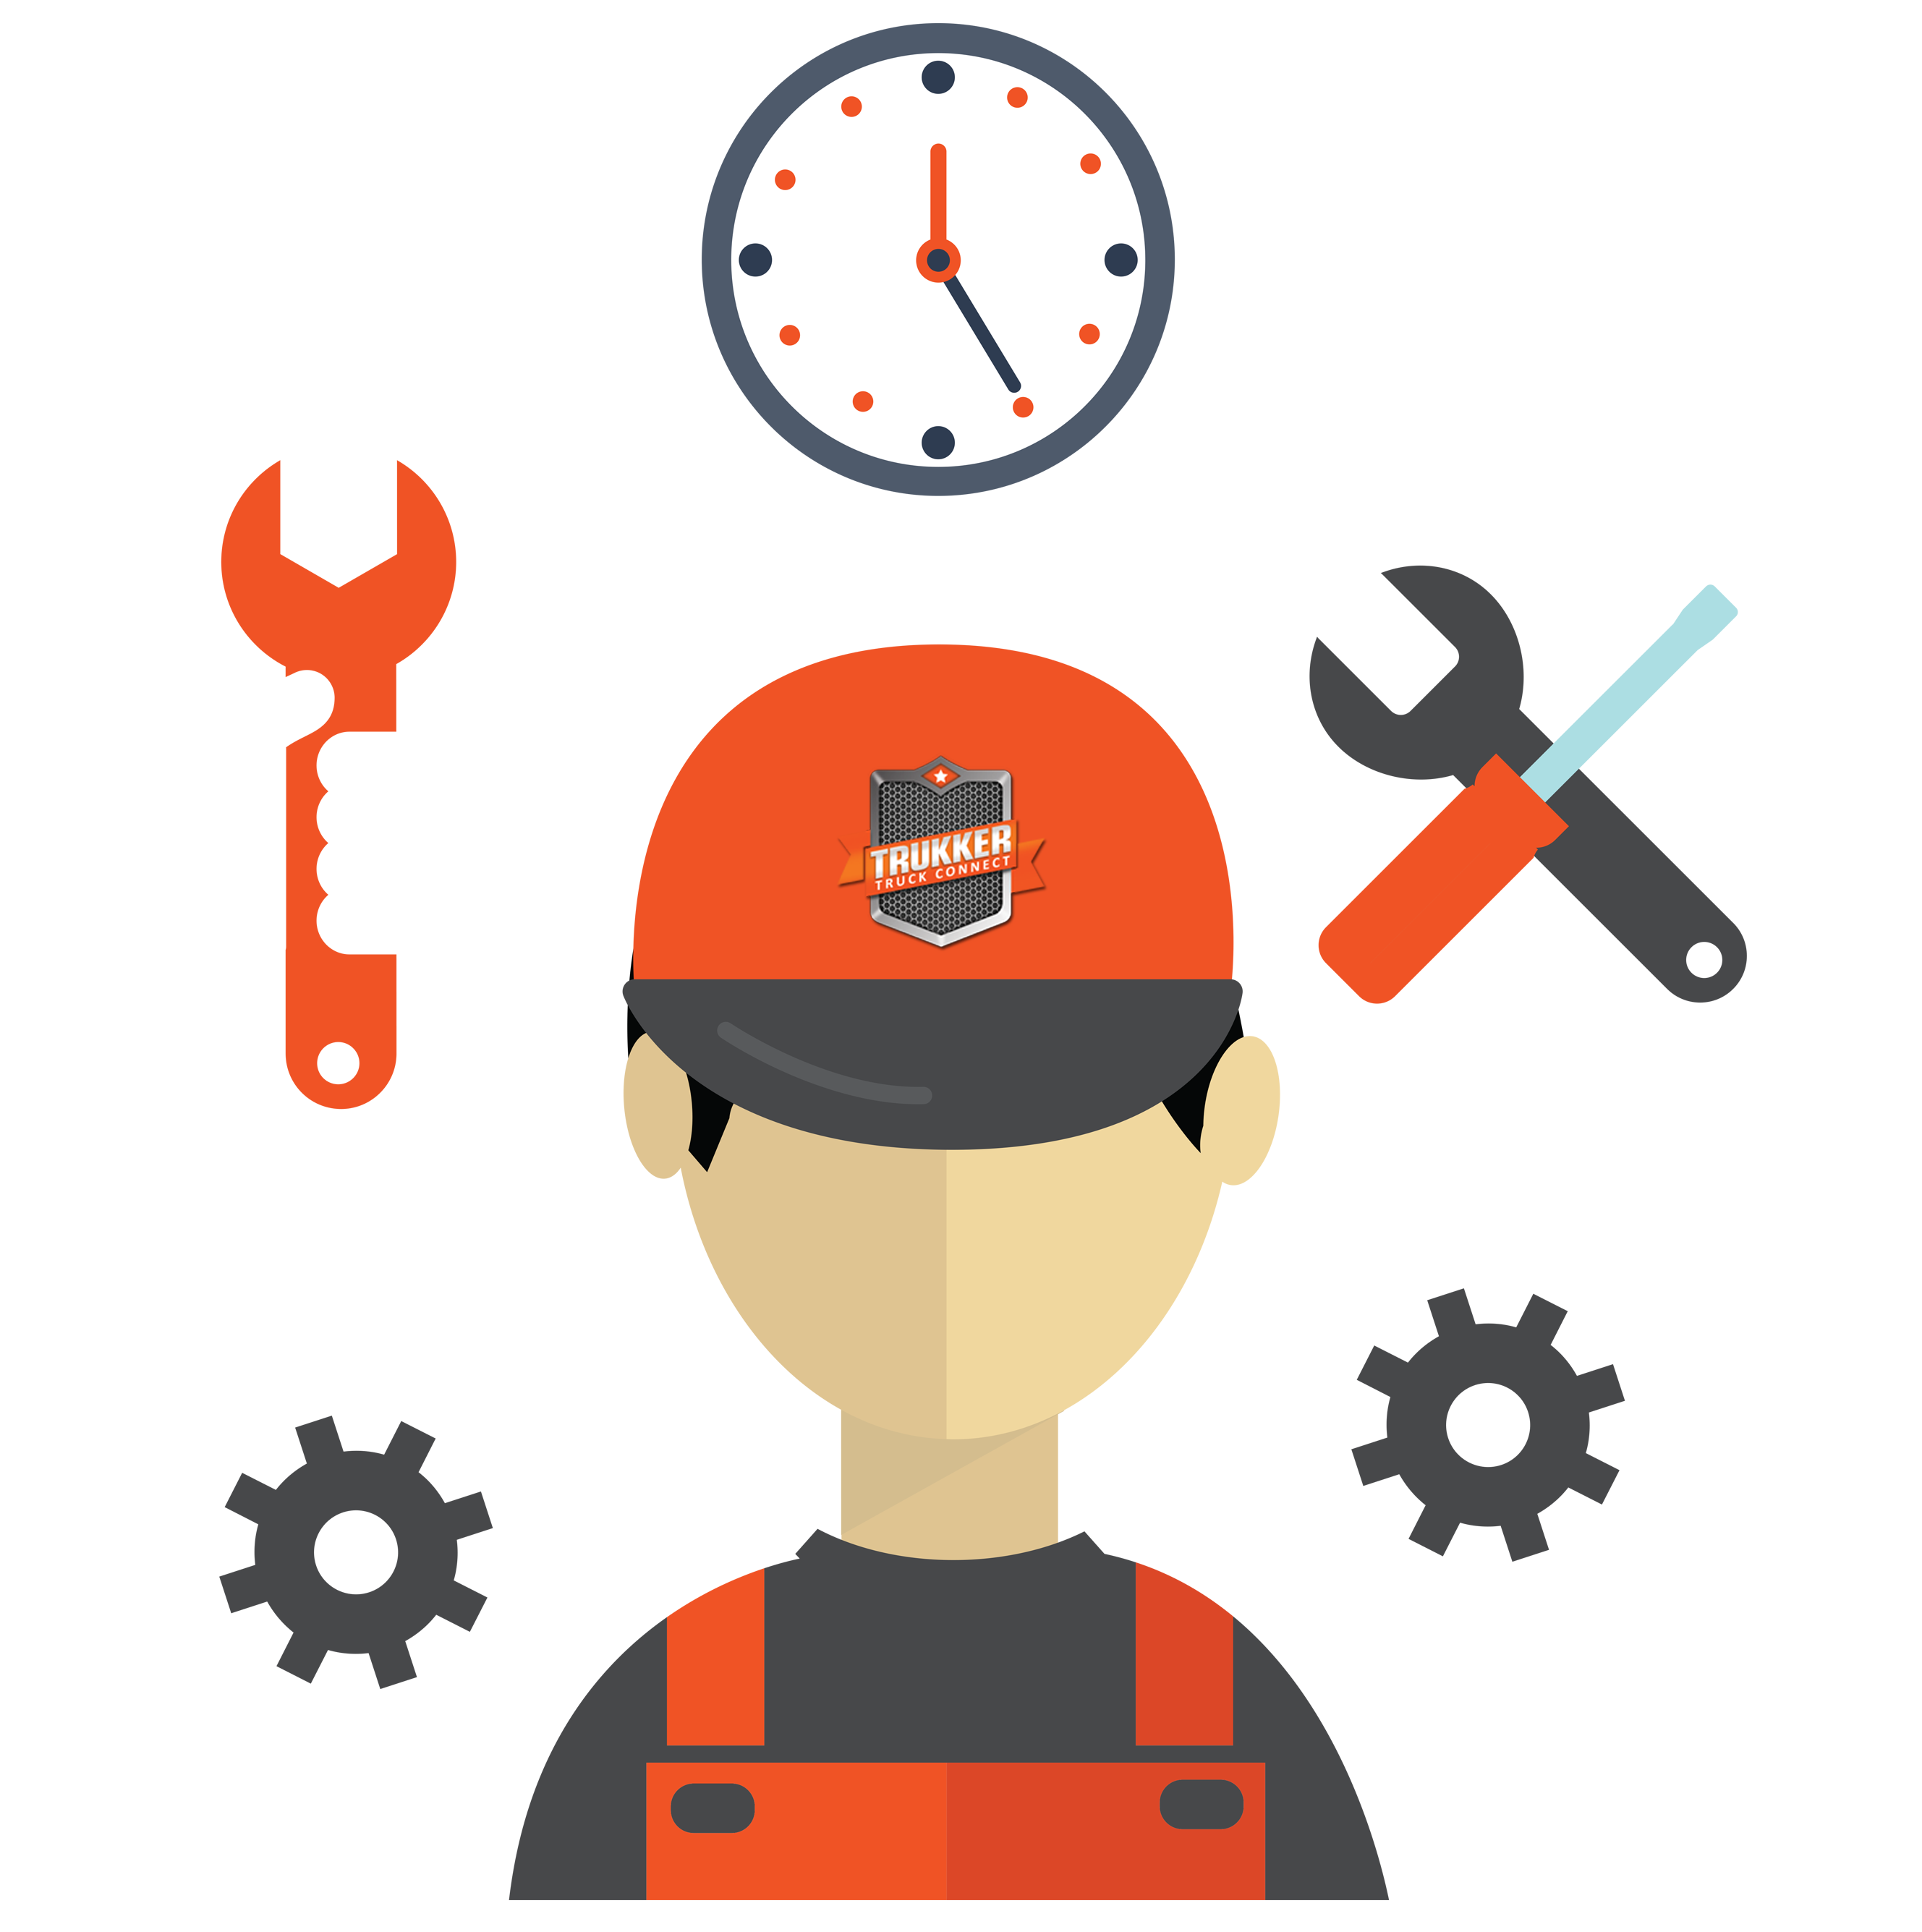 TruKKer Provides Skilled Professionals To Configure, Set Up And Install  Your Furniture And Equipment. Just One Of The Many Things We Can Take Away  From Your ...